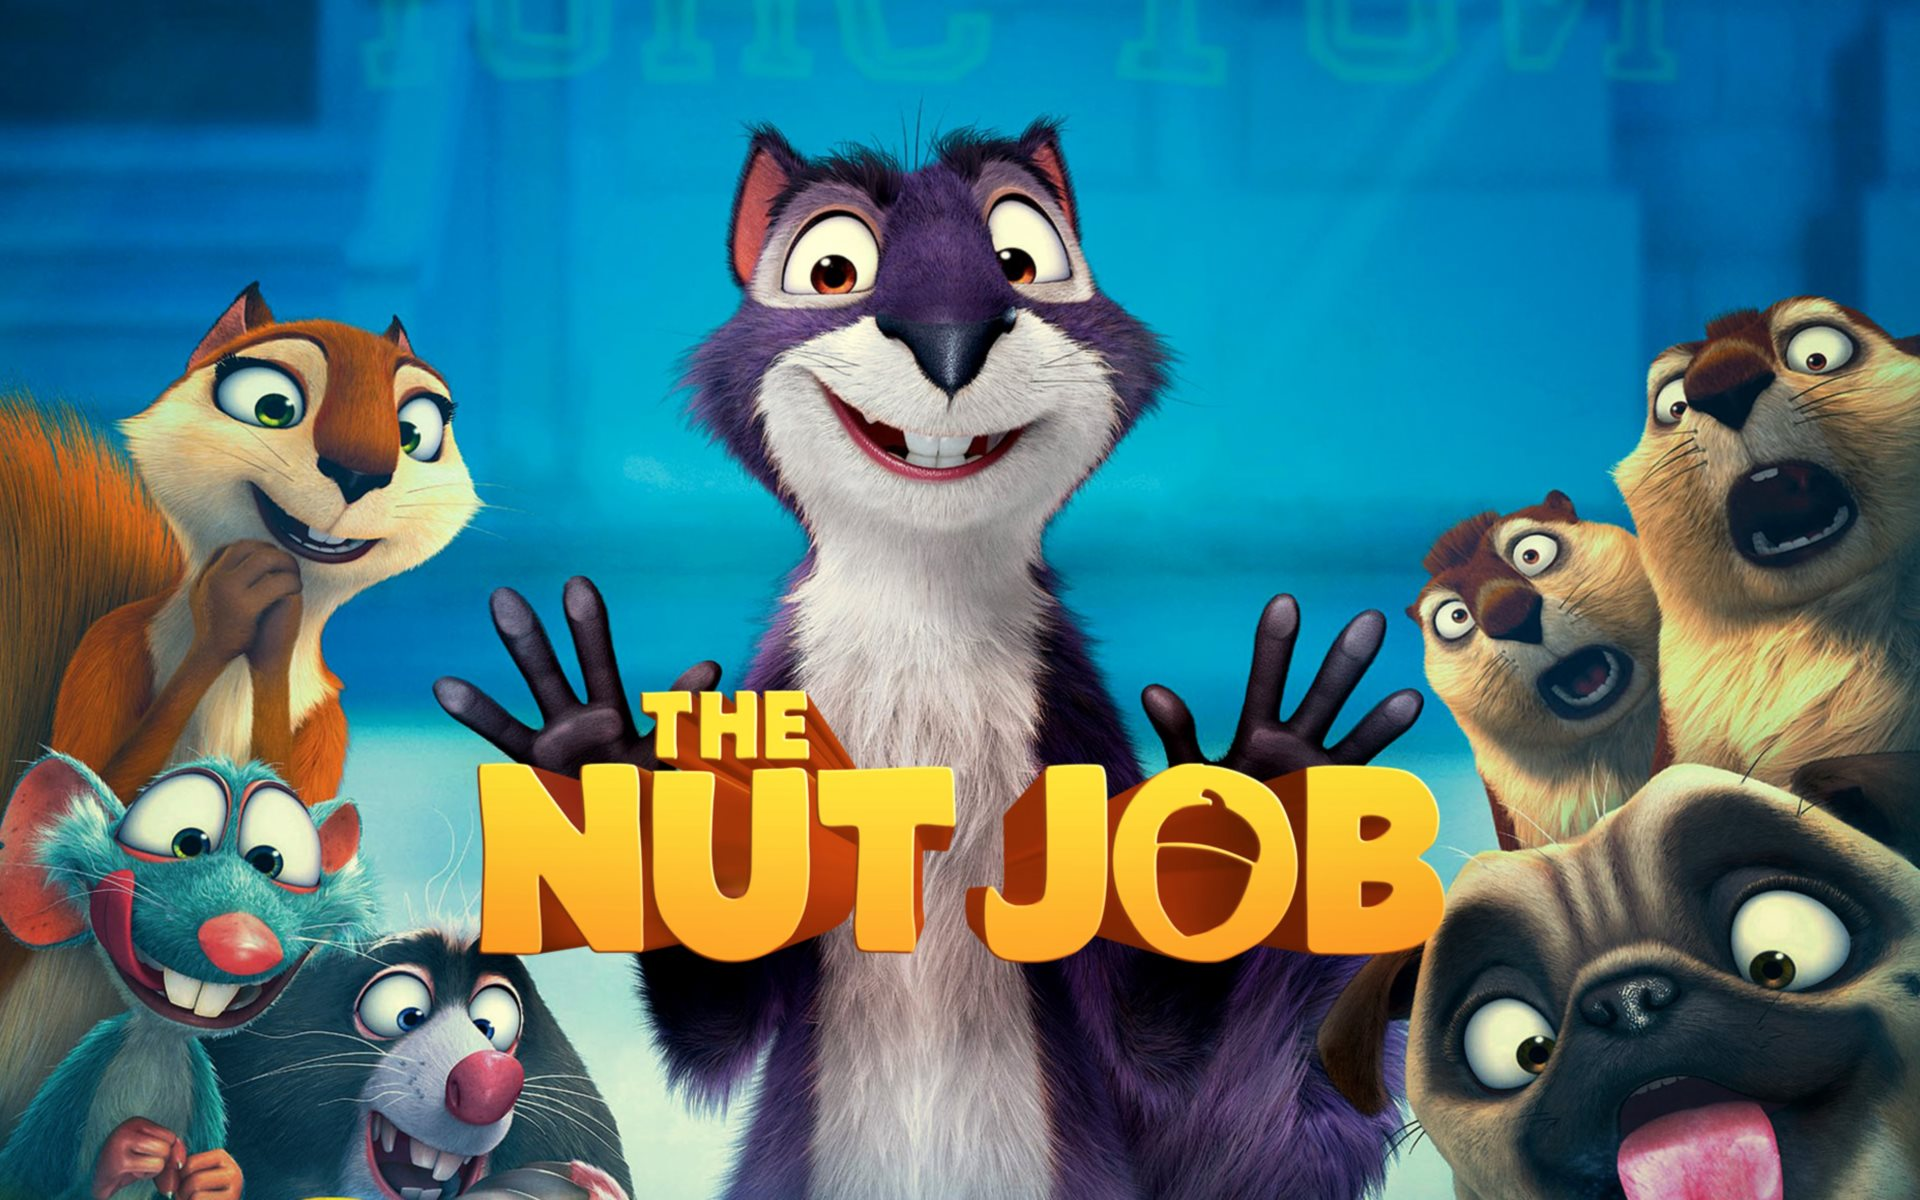 The nut job (1)